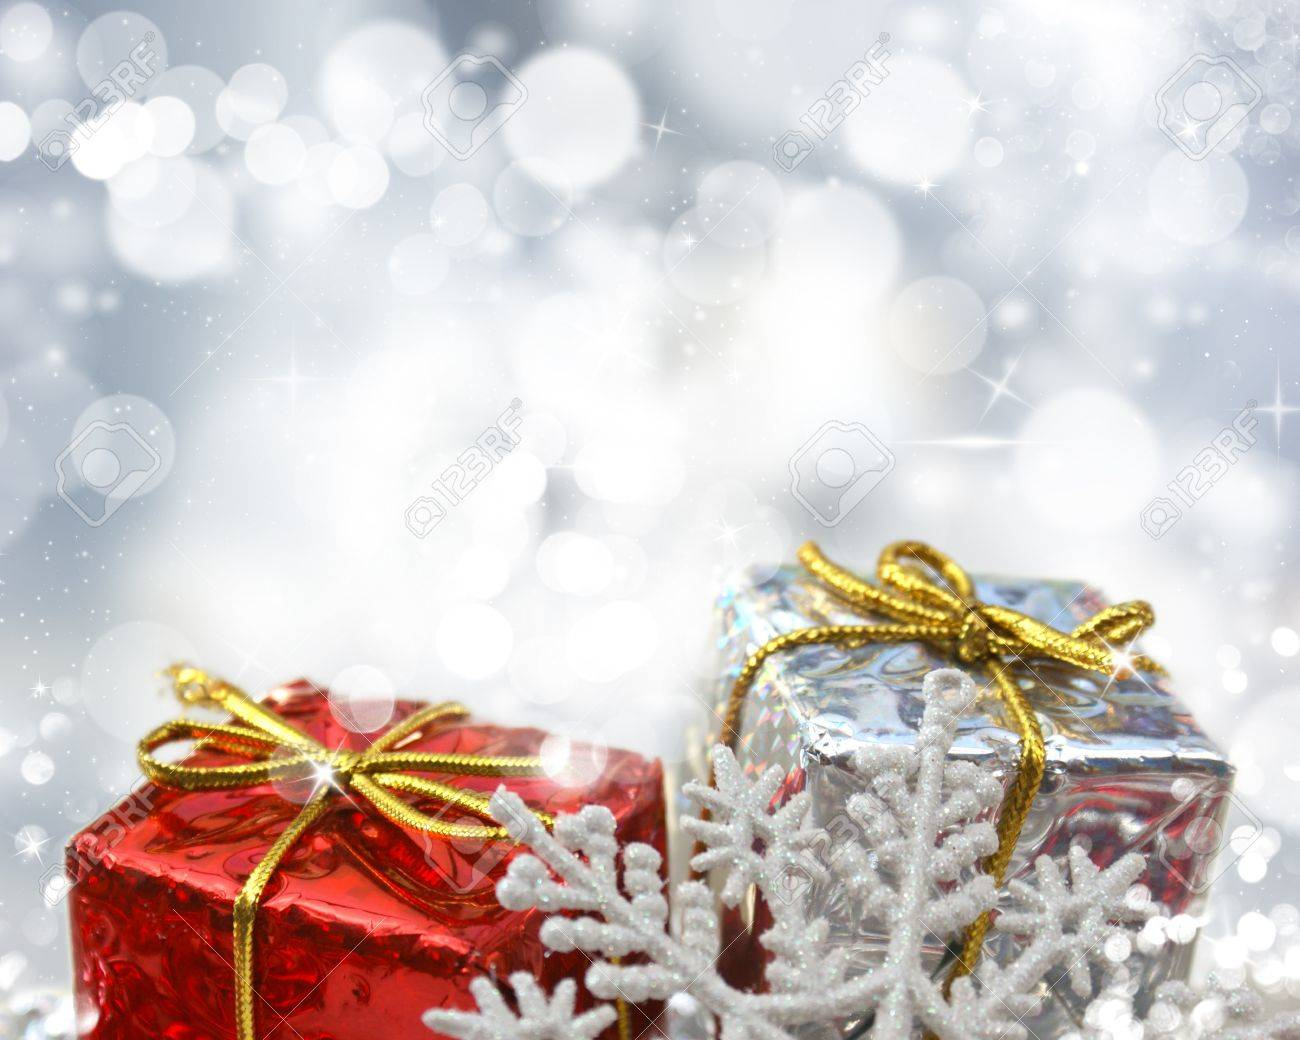 Christmas Gifts On A Silver Bokeh Lights Background Stock Photo ...